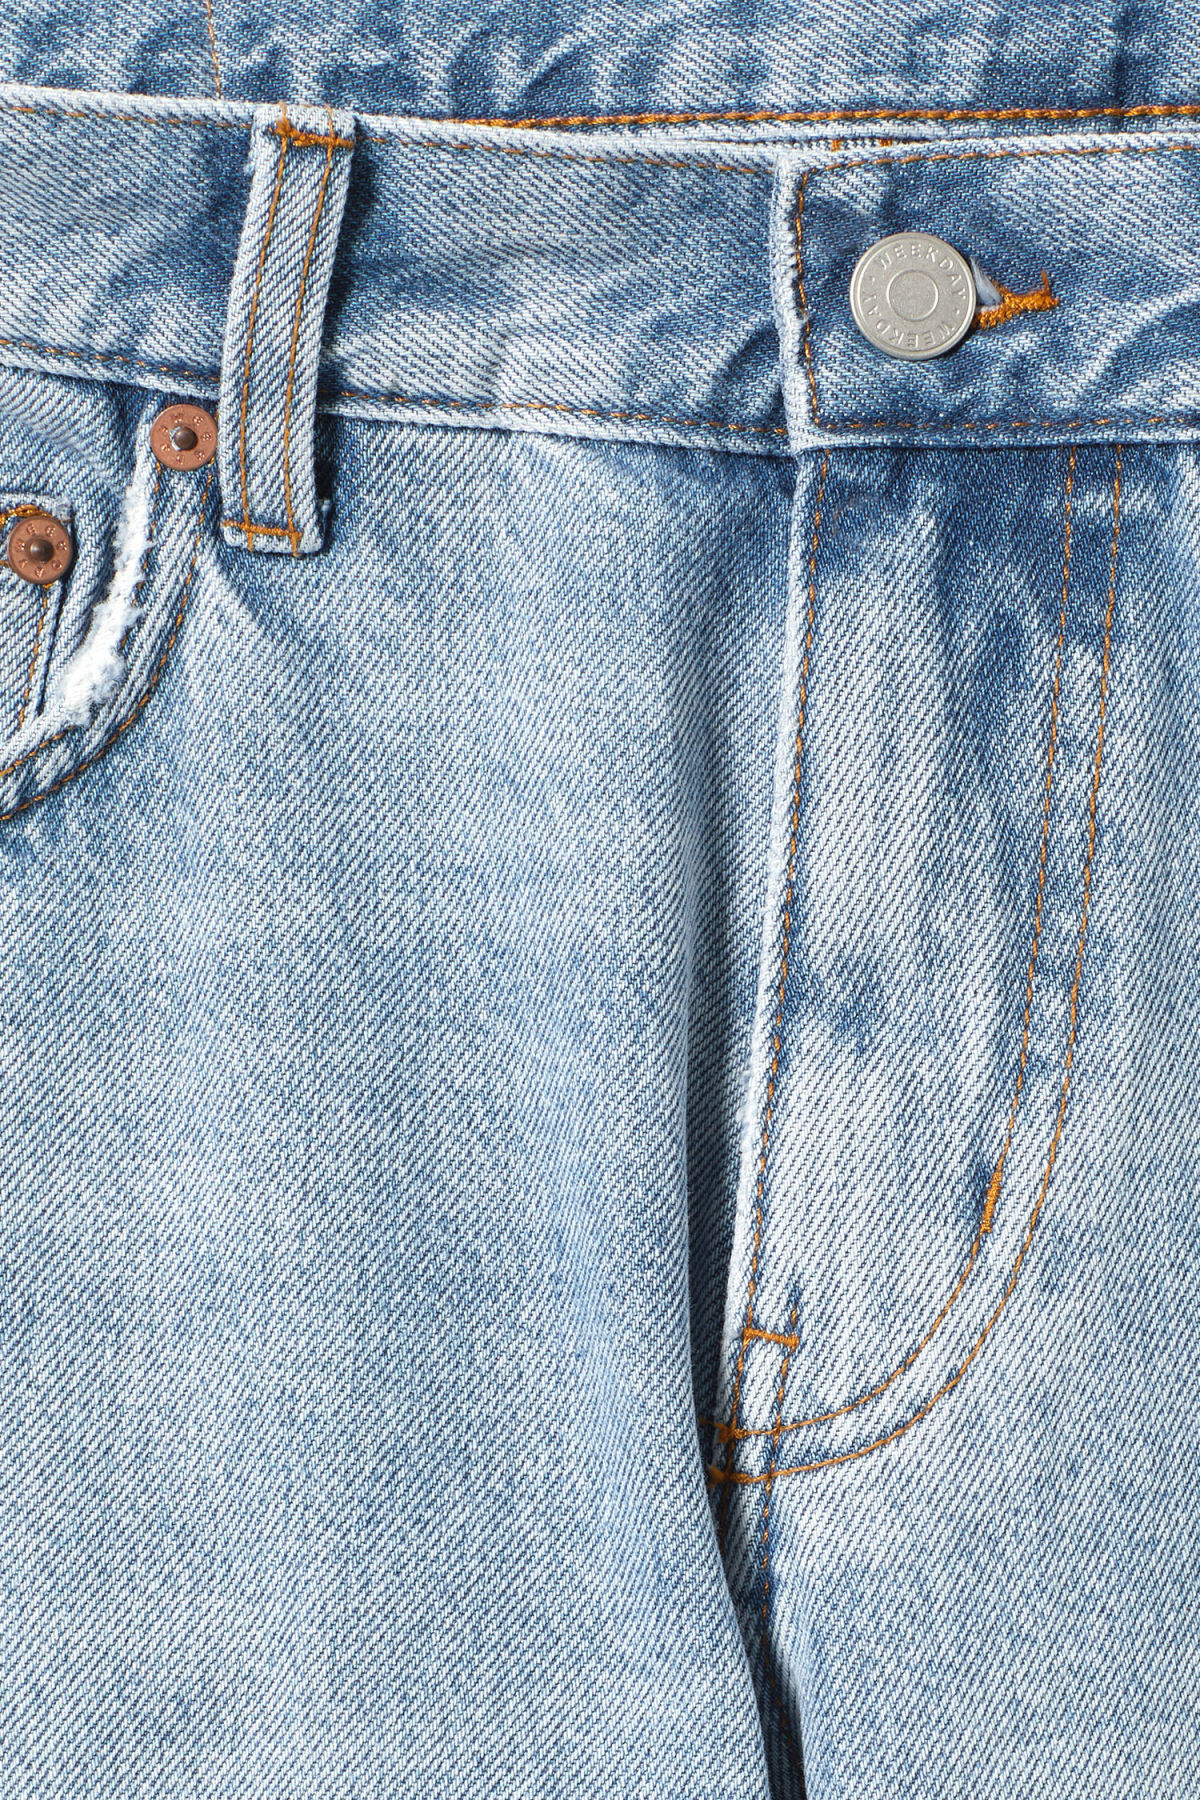 Detailed image of Weekday friday spring blue jeans in blue